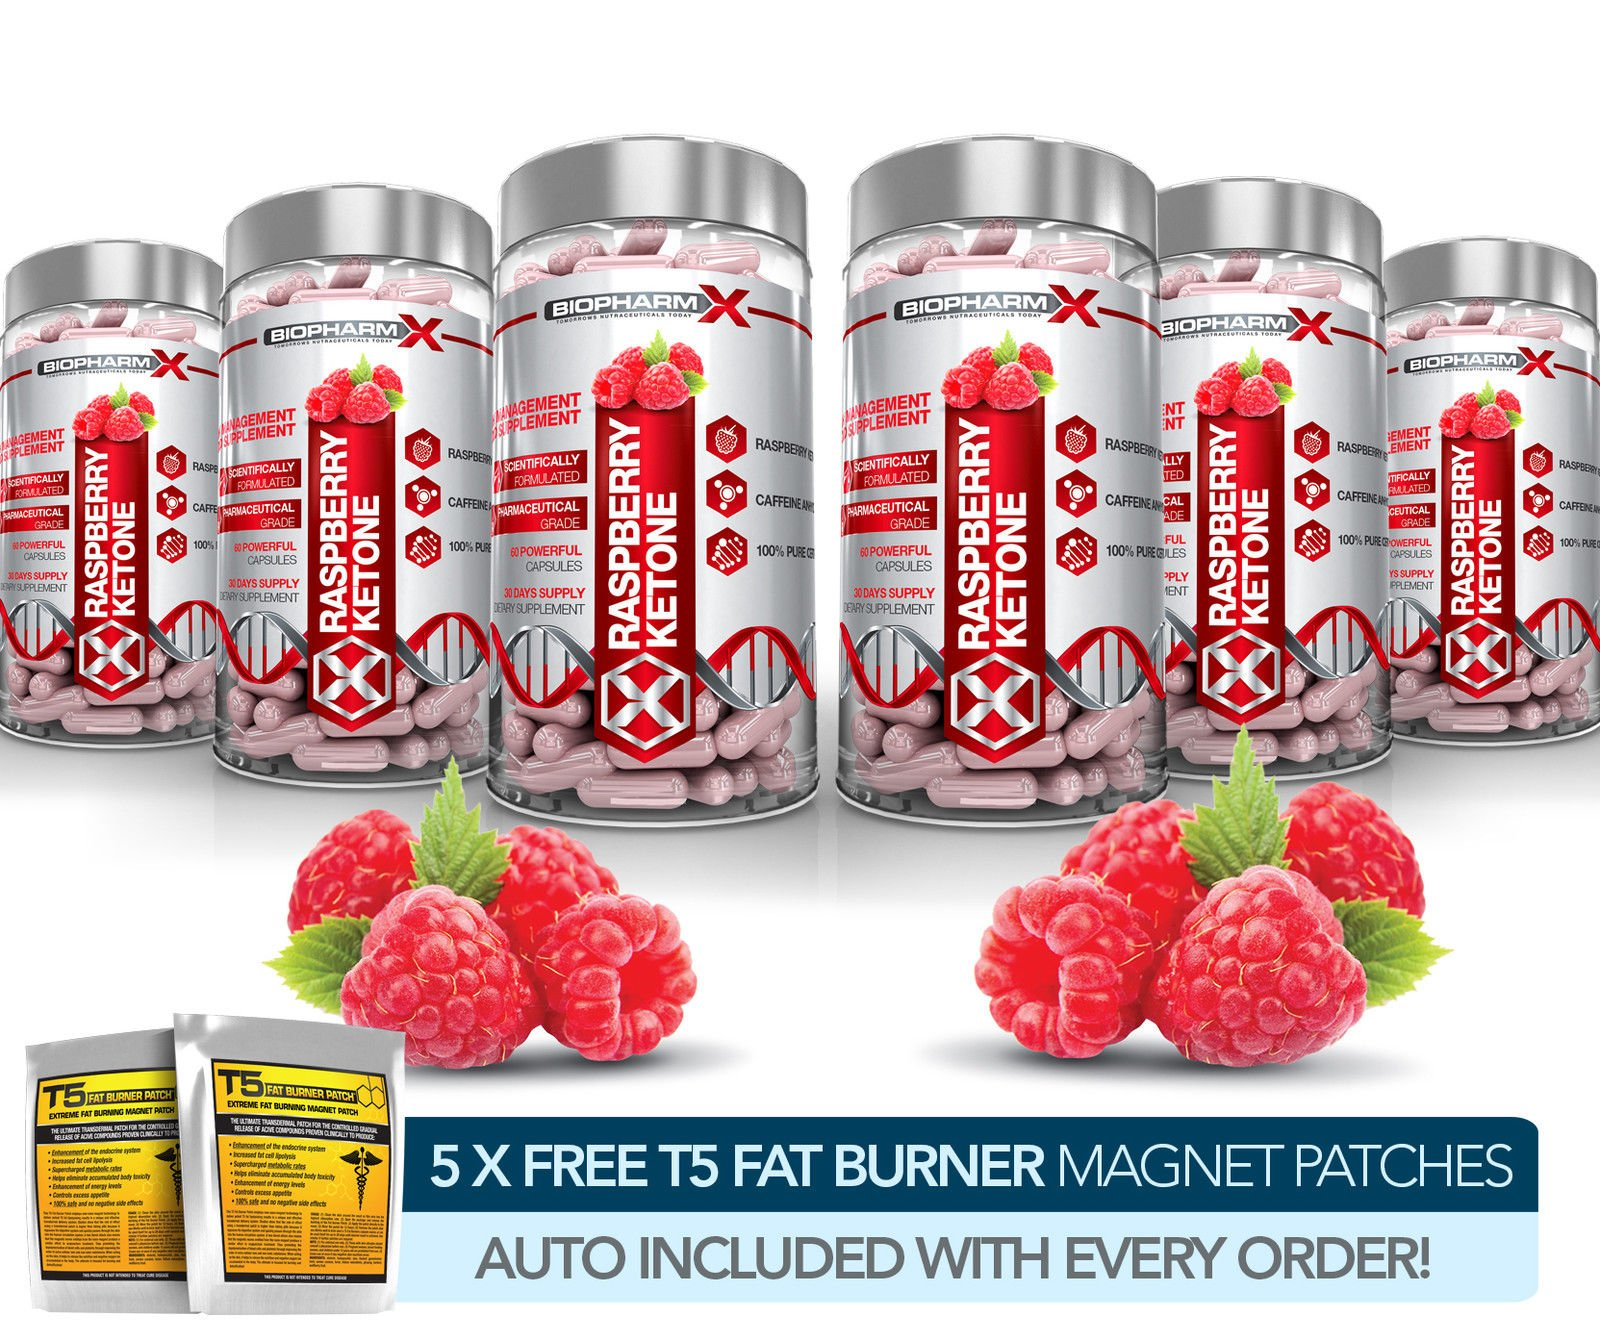 X6 PURE RASPBERRY KETONES - STRONGEST SLIMMING / DIET & FAT BURNER + DETOX PILLS